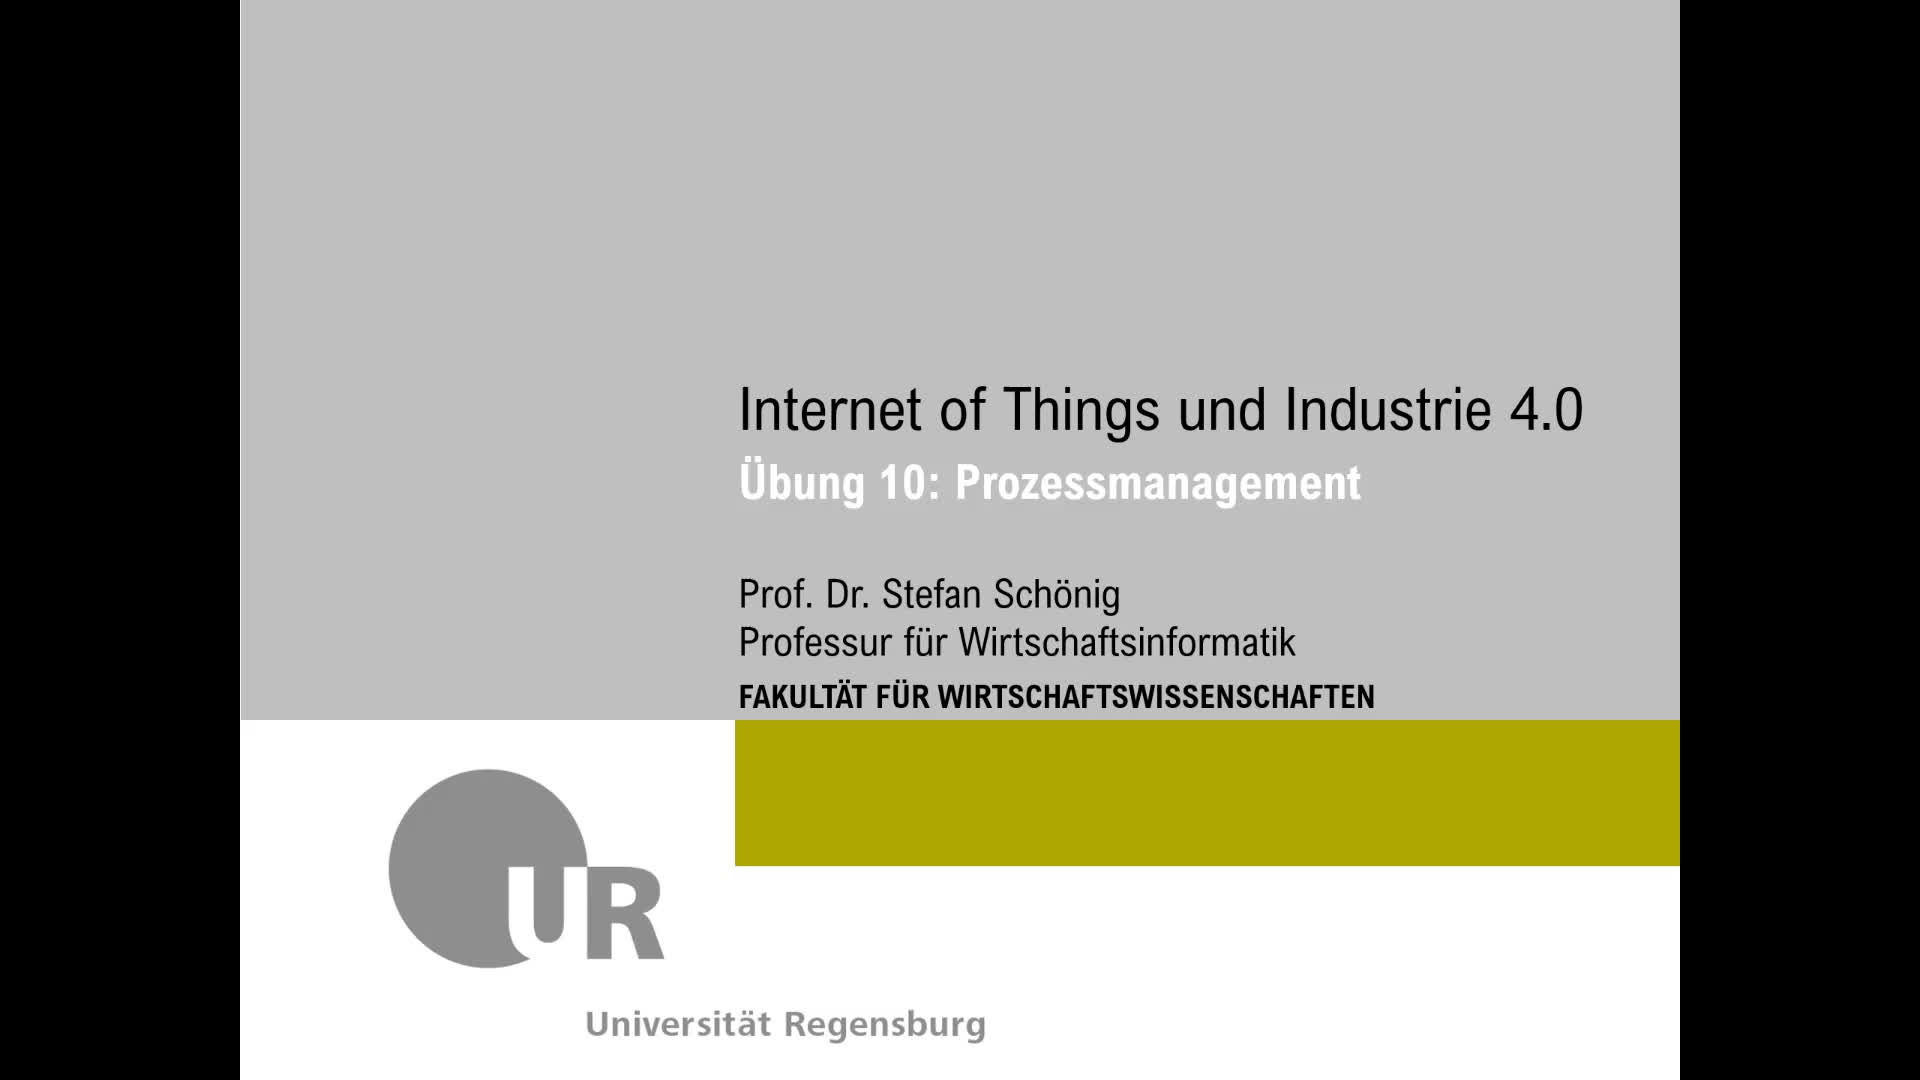 SS 2020 - Internet of Things und Industrie 4.0 - Übung 10 (Prozessmanagement)